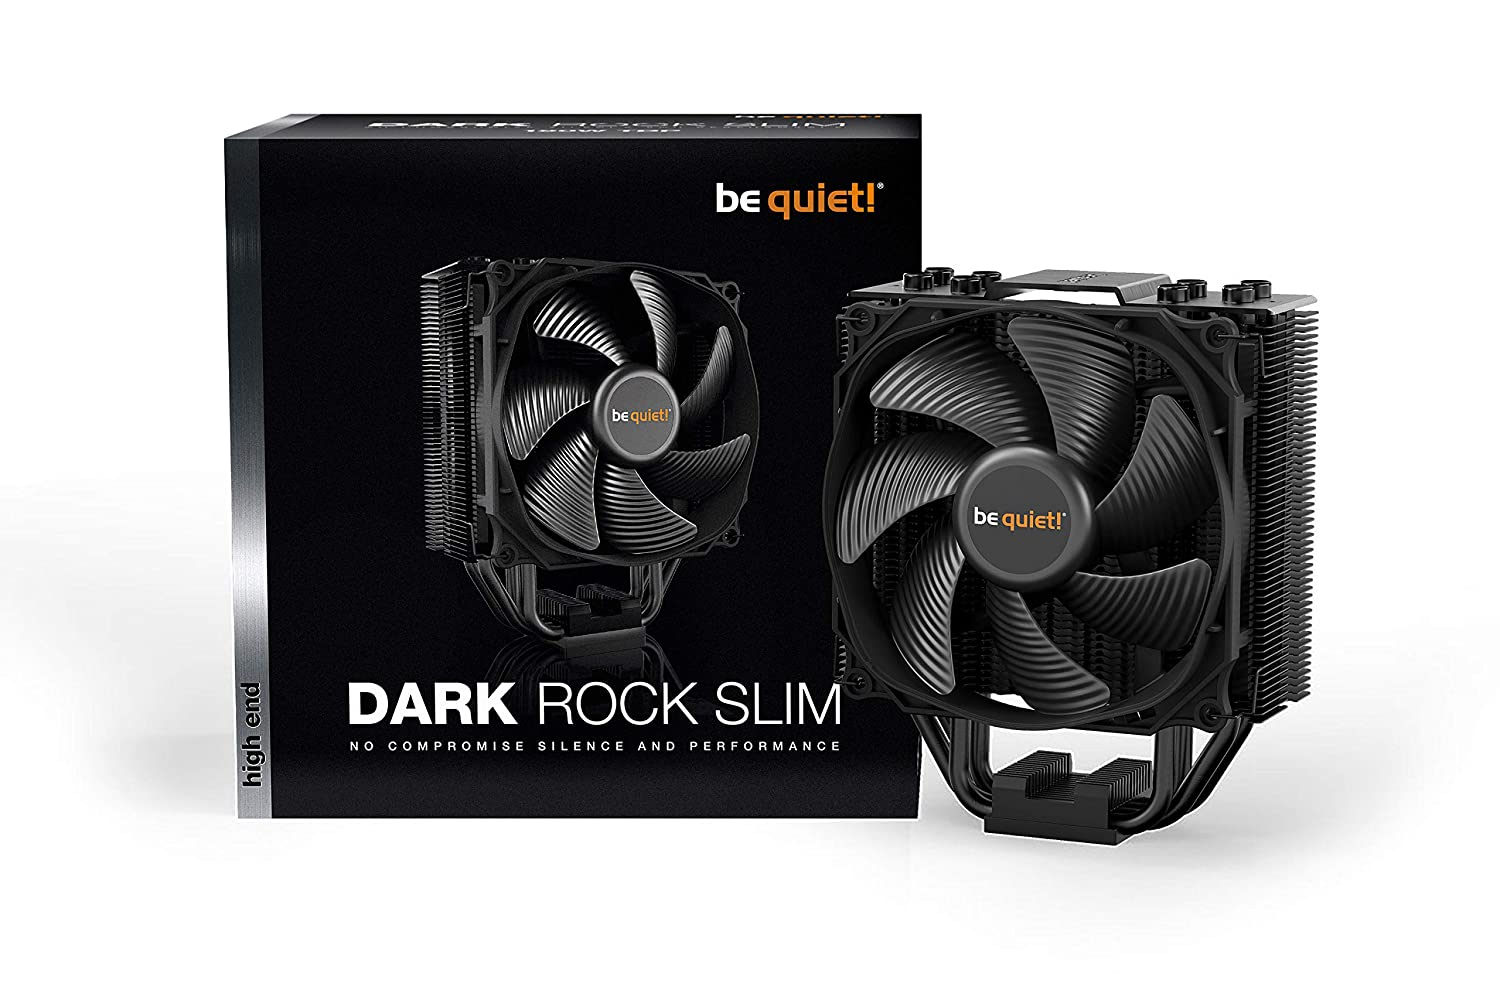 be quiet! BK024 Dark Rock Slim, CPU Cooler, 180W TDP, Silent Wings 3 120mm PWM Fan, Compact Construction